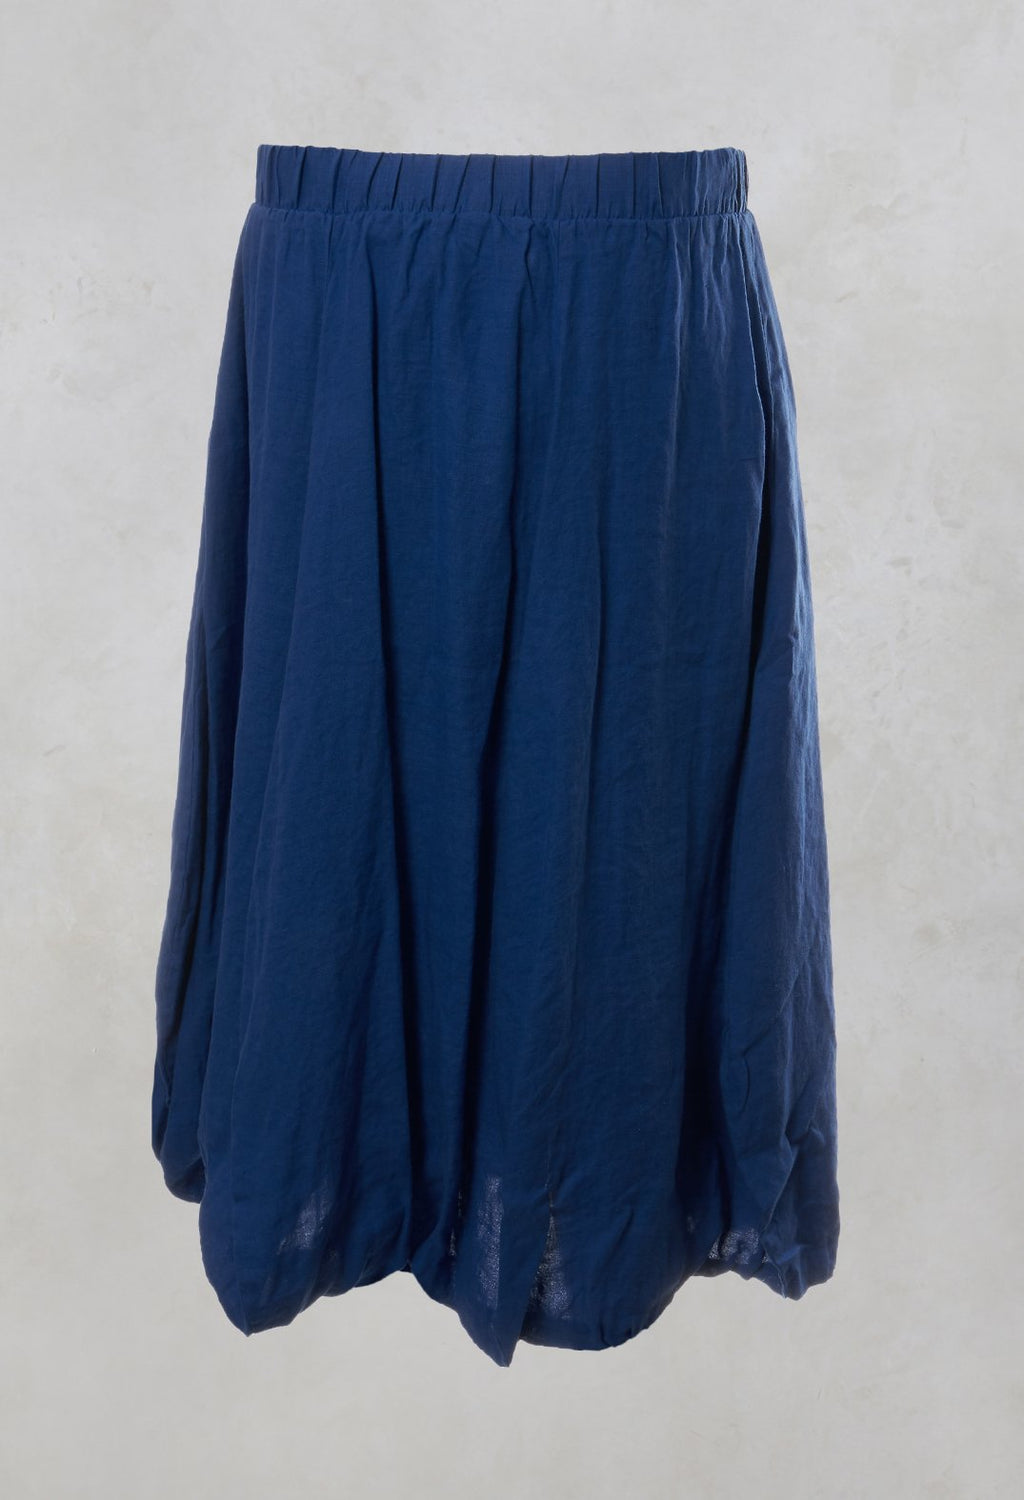 Bubble Skirt in Blue